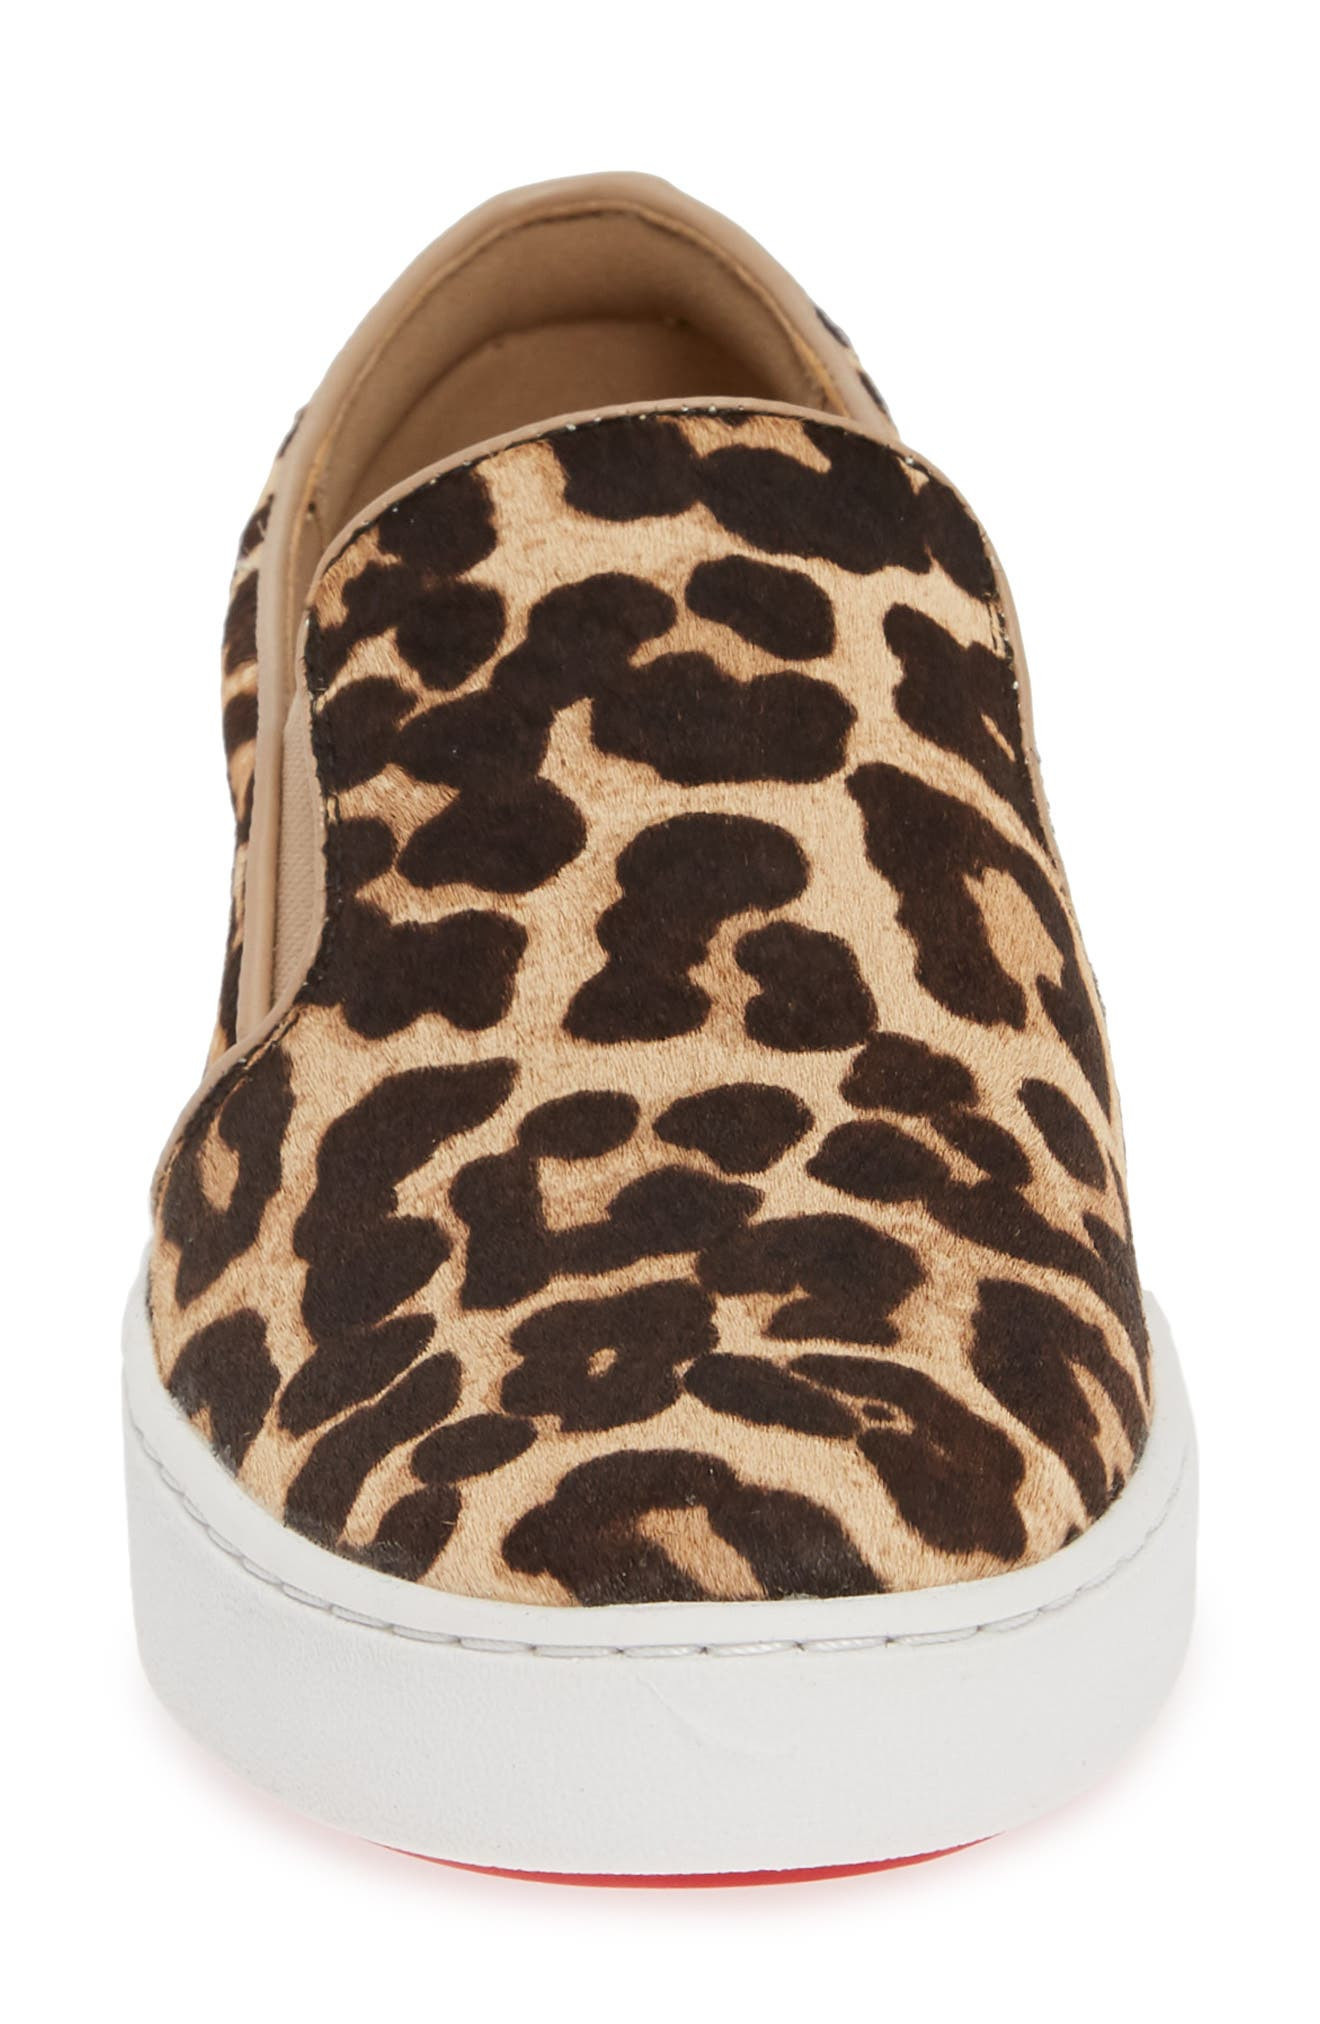 MICHAEL MICHAEL KORS, Keaton Genuine Calf Hair Slip-On Sneaker, Alternate thumbnail 4, color, NATURAL CALF HAIR